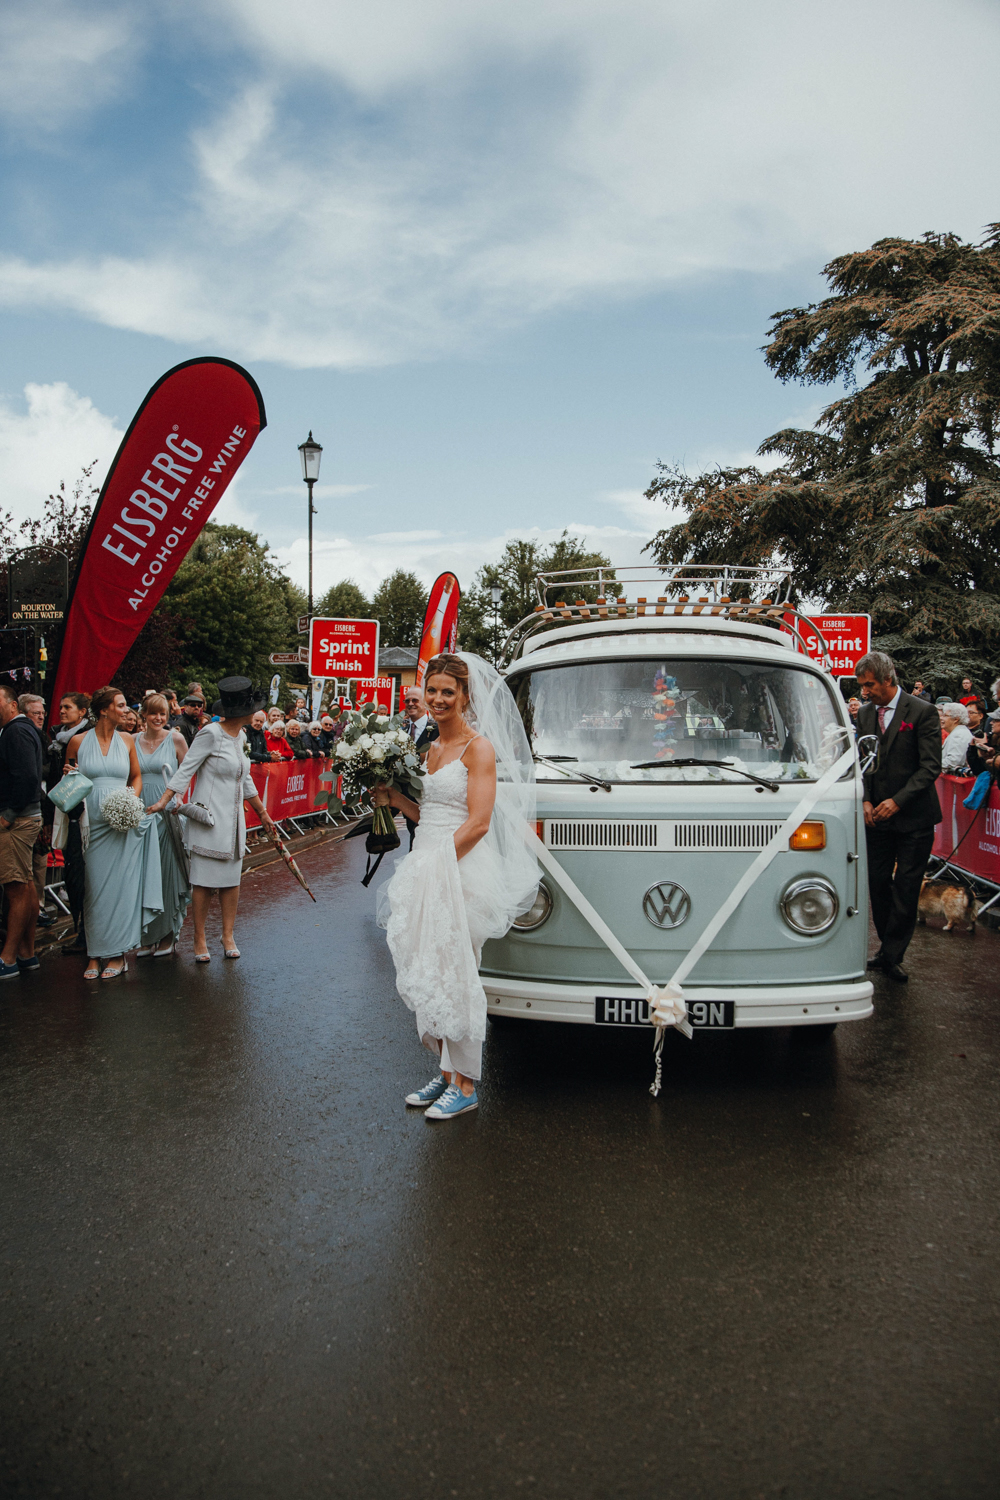 The bride in sneakers anda 60s van   what can be better for a fun wedding